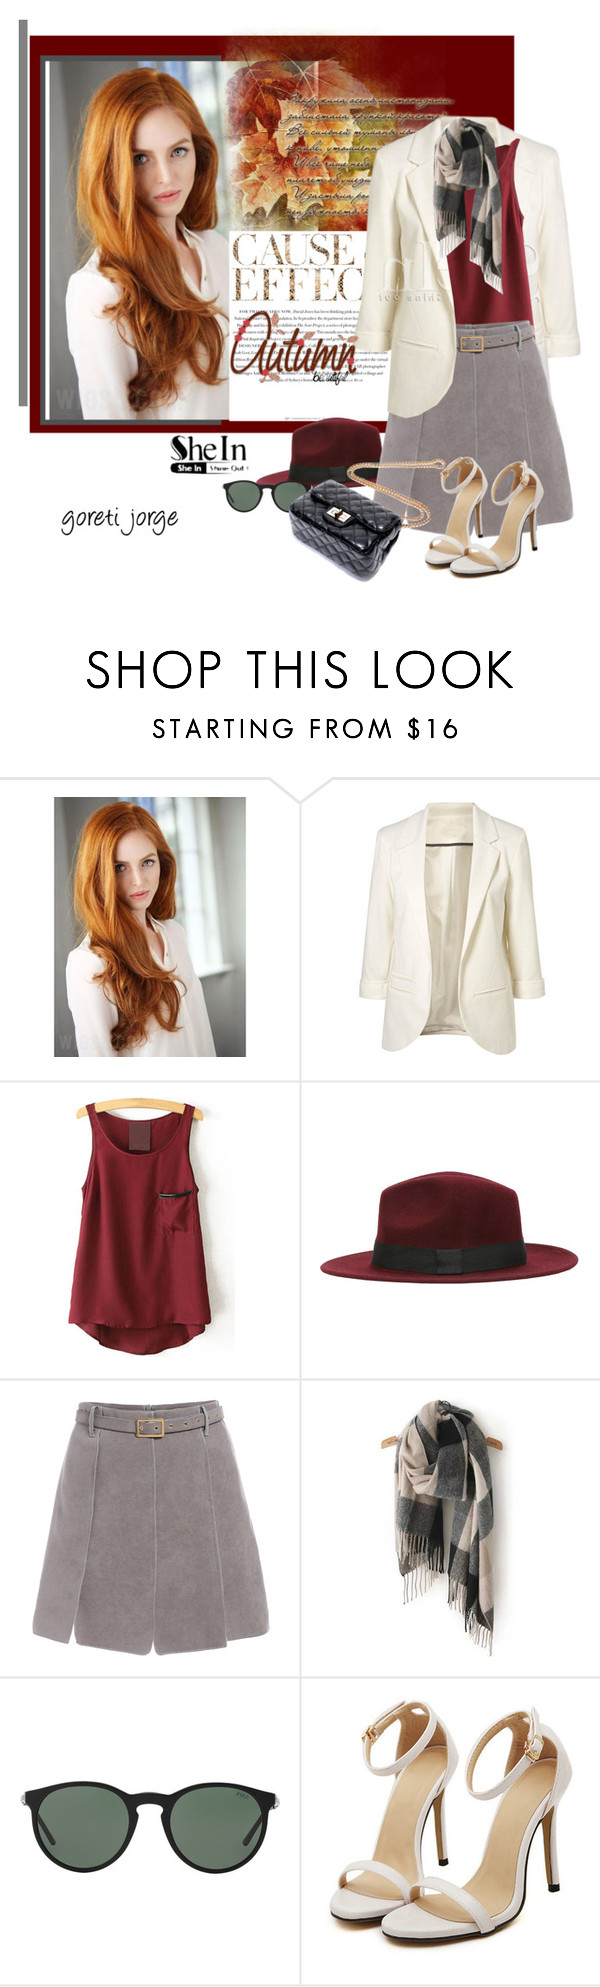 """Blazer shein"" by goreti ❤ liked on Polyvore featuring Envi and Polo Ralph Lauren"